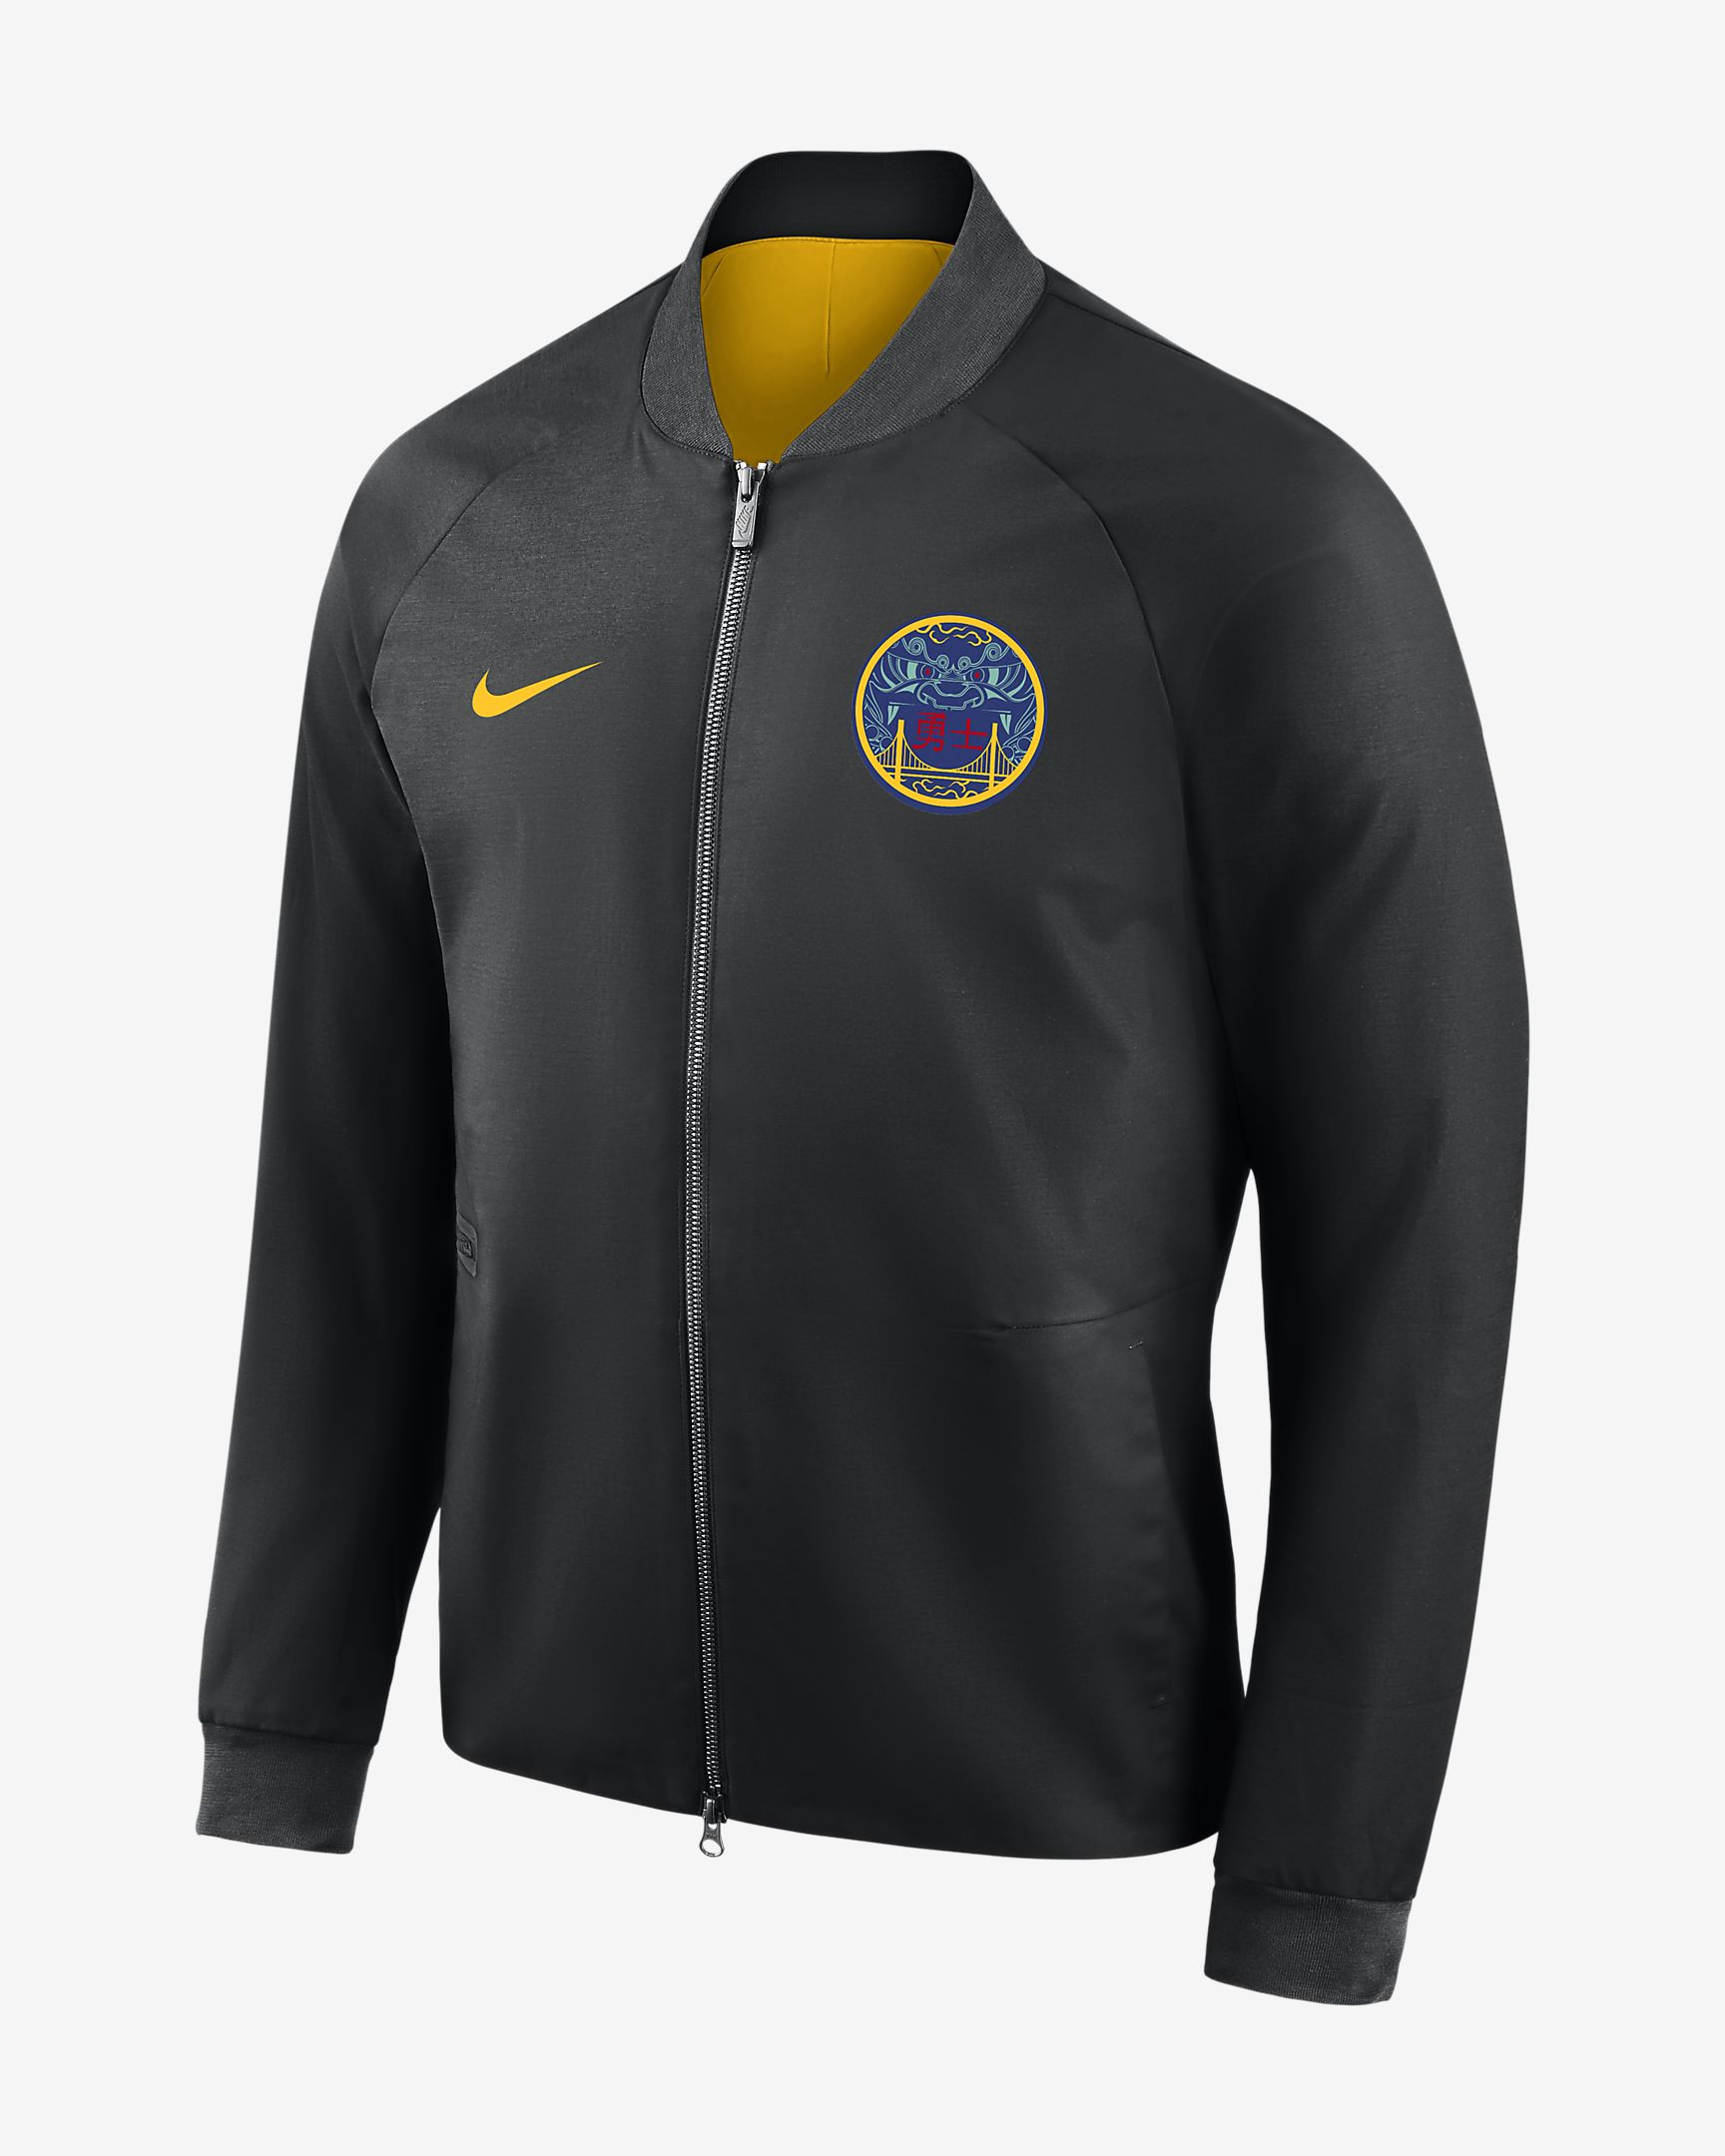 8ff33e320 Nike NBA Golden State Warriors City Edition Modern Varsity Jacket - NBA  Shop Golden State Warriors Merchandise - Superfanas.lt